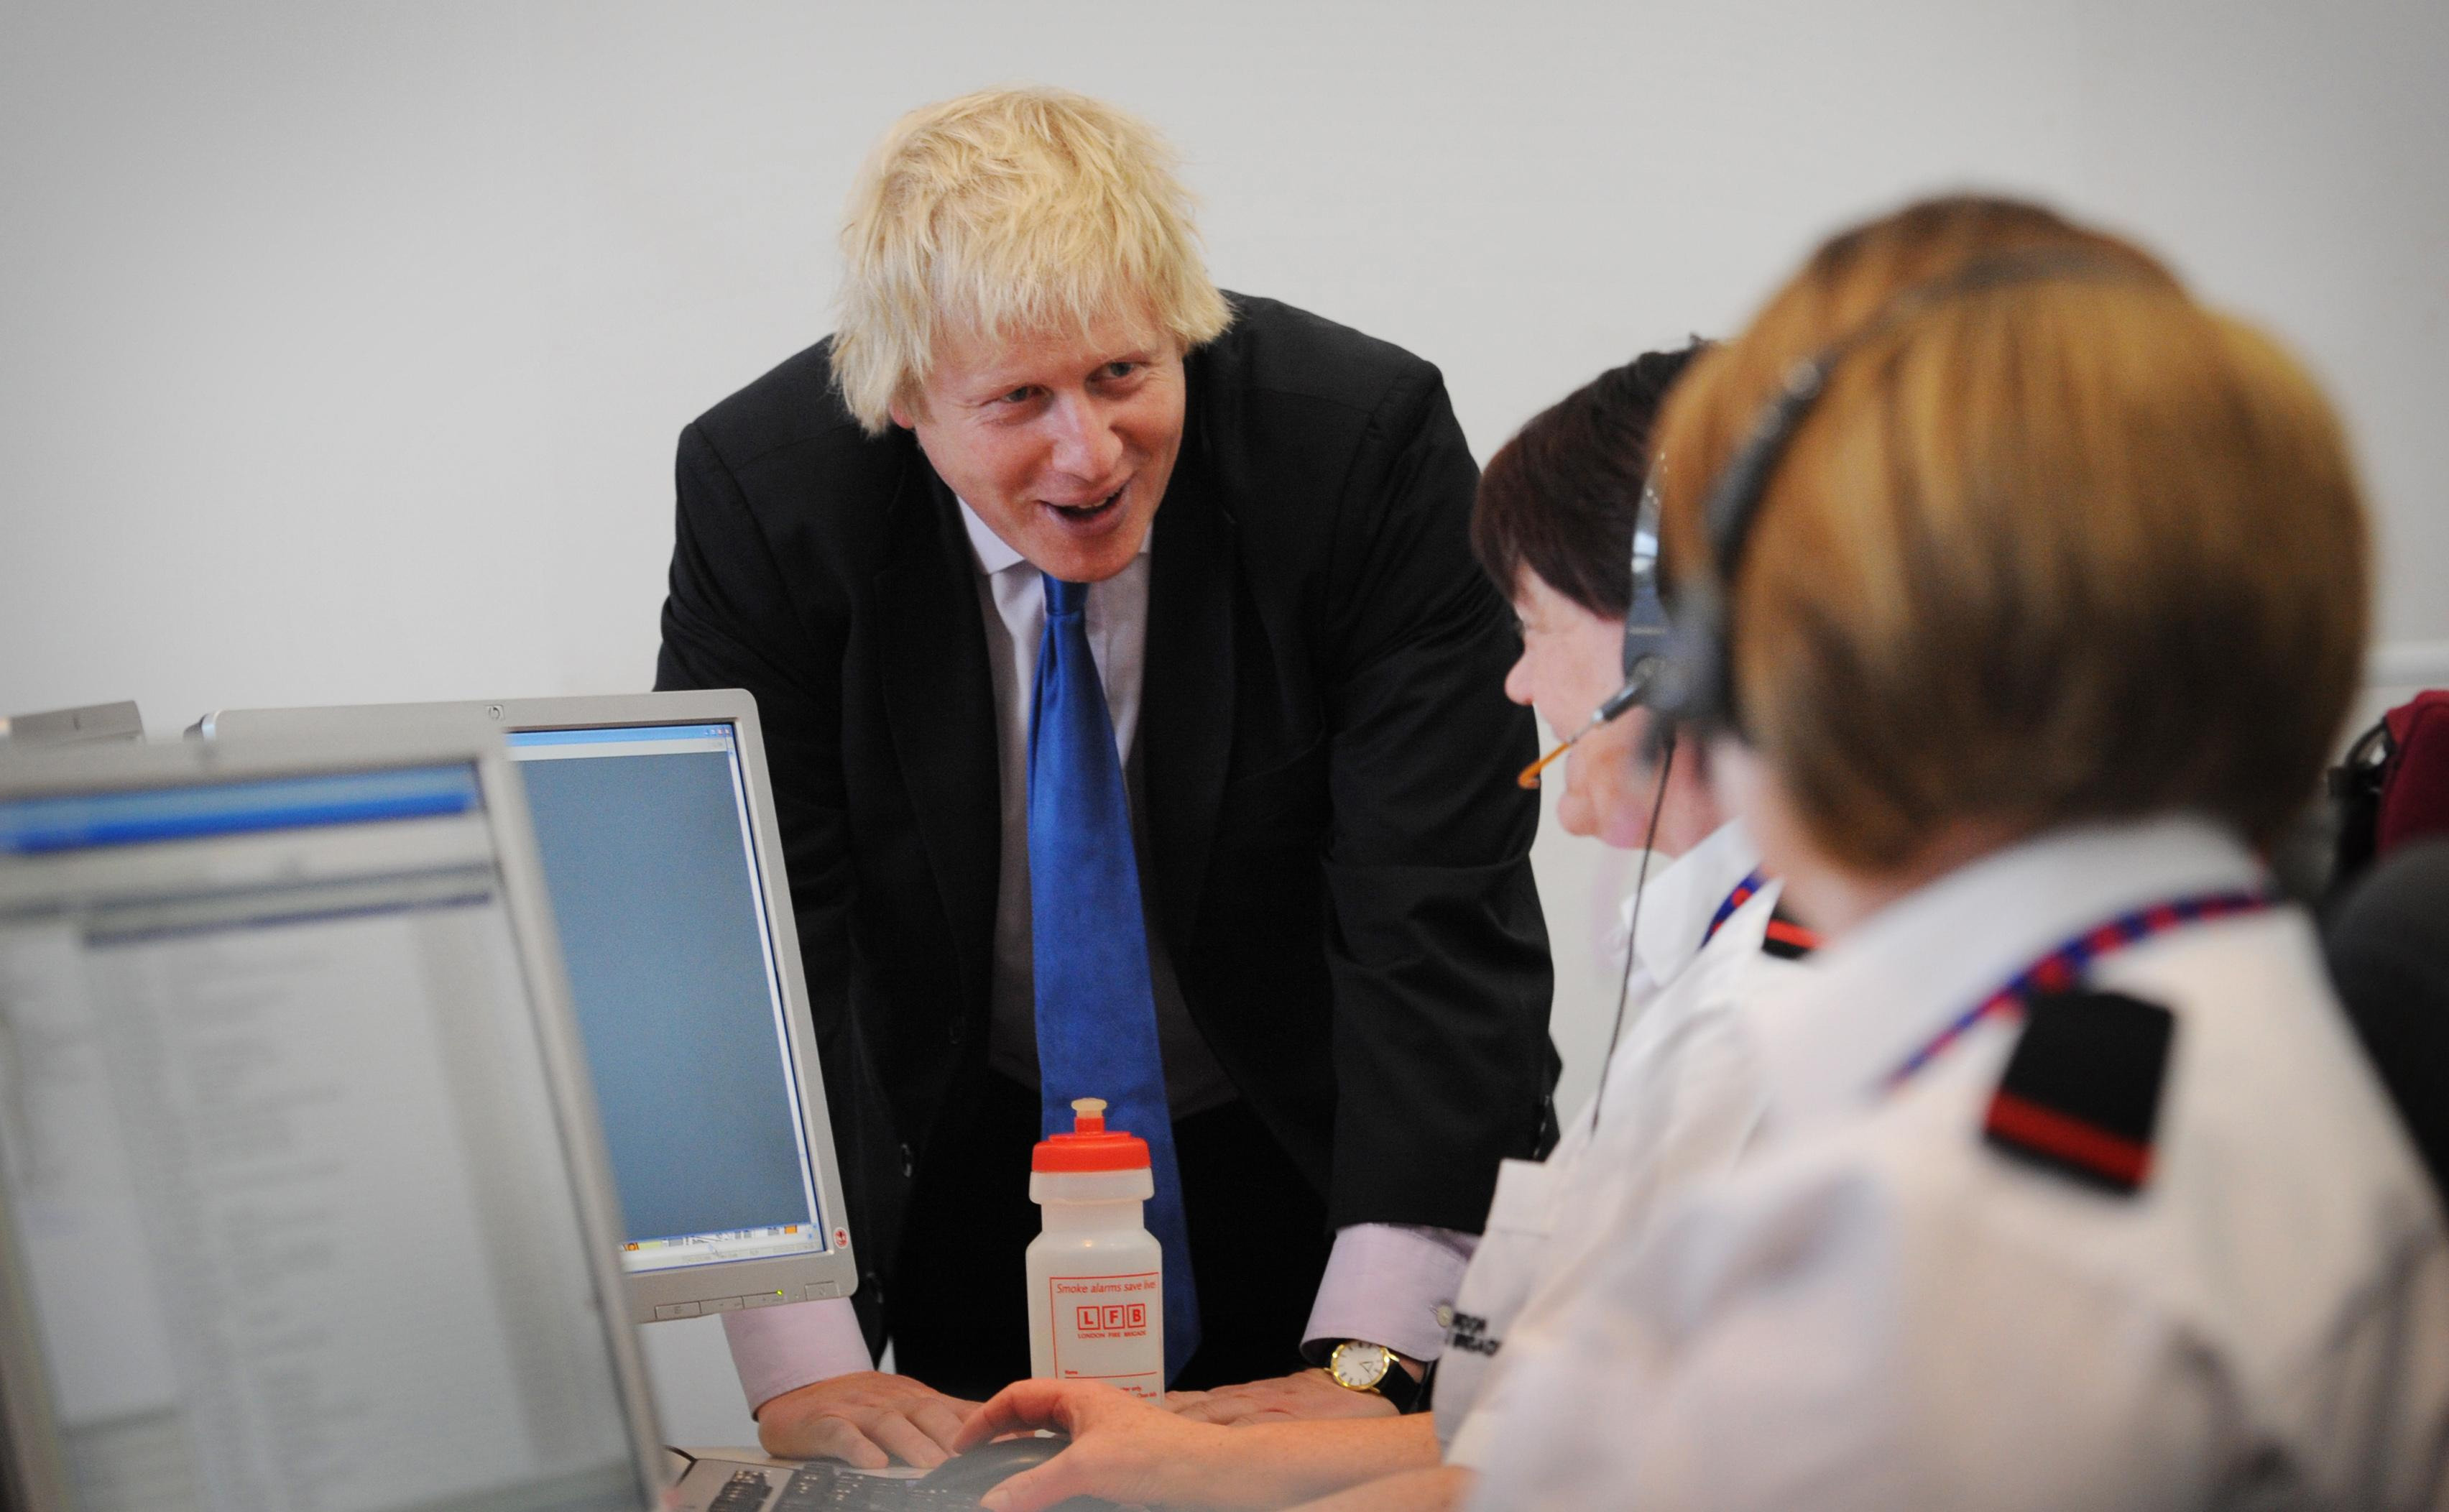 London Mayor Boris Johnson tours the new fire control centre in west London ahead of the London 2012 Olympic Games later this year after it was officially opened.